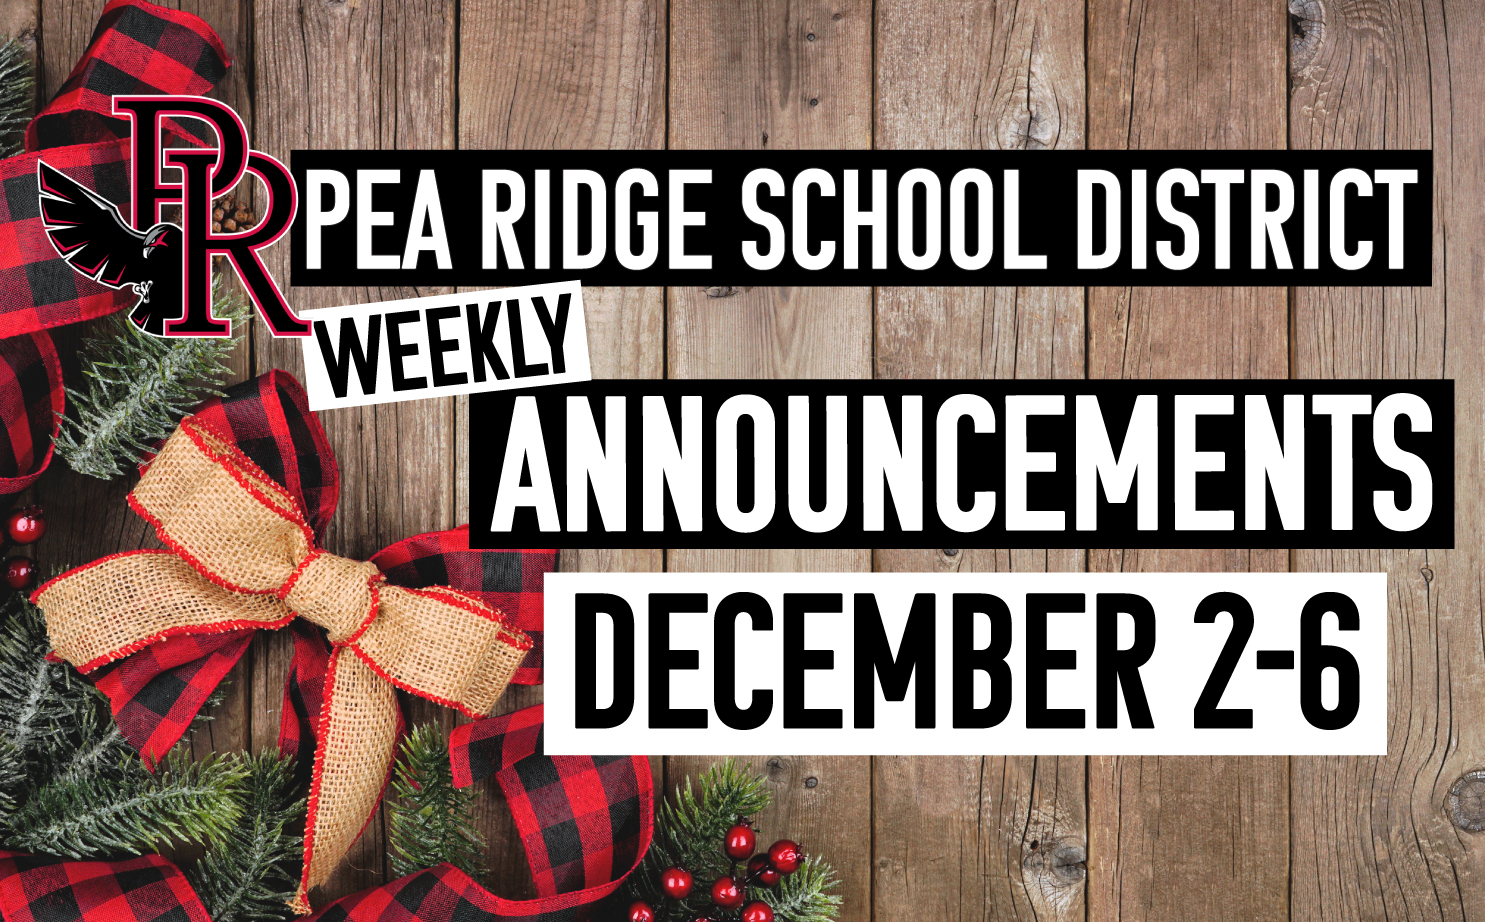 Weekly Announcements Dec. 2-6